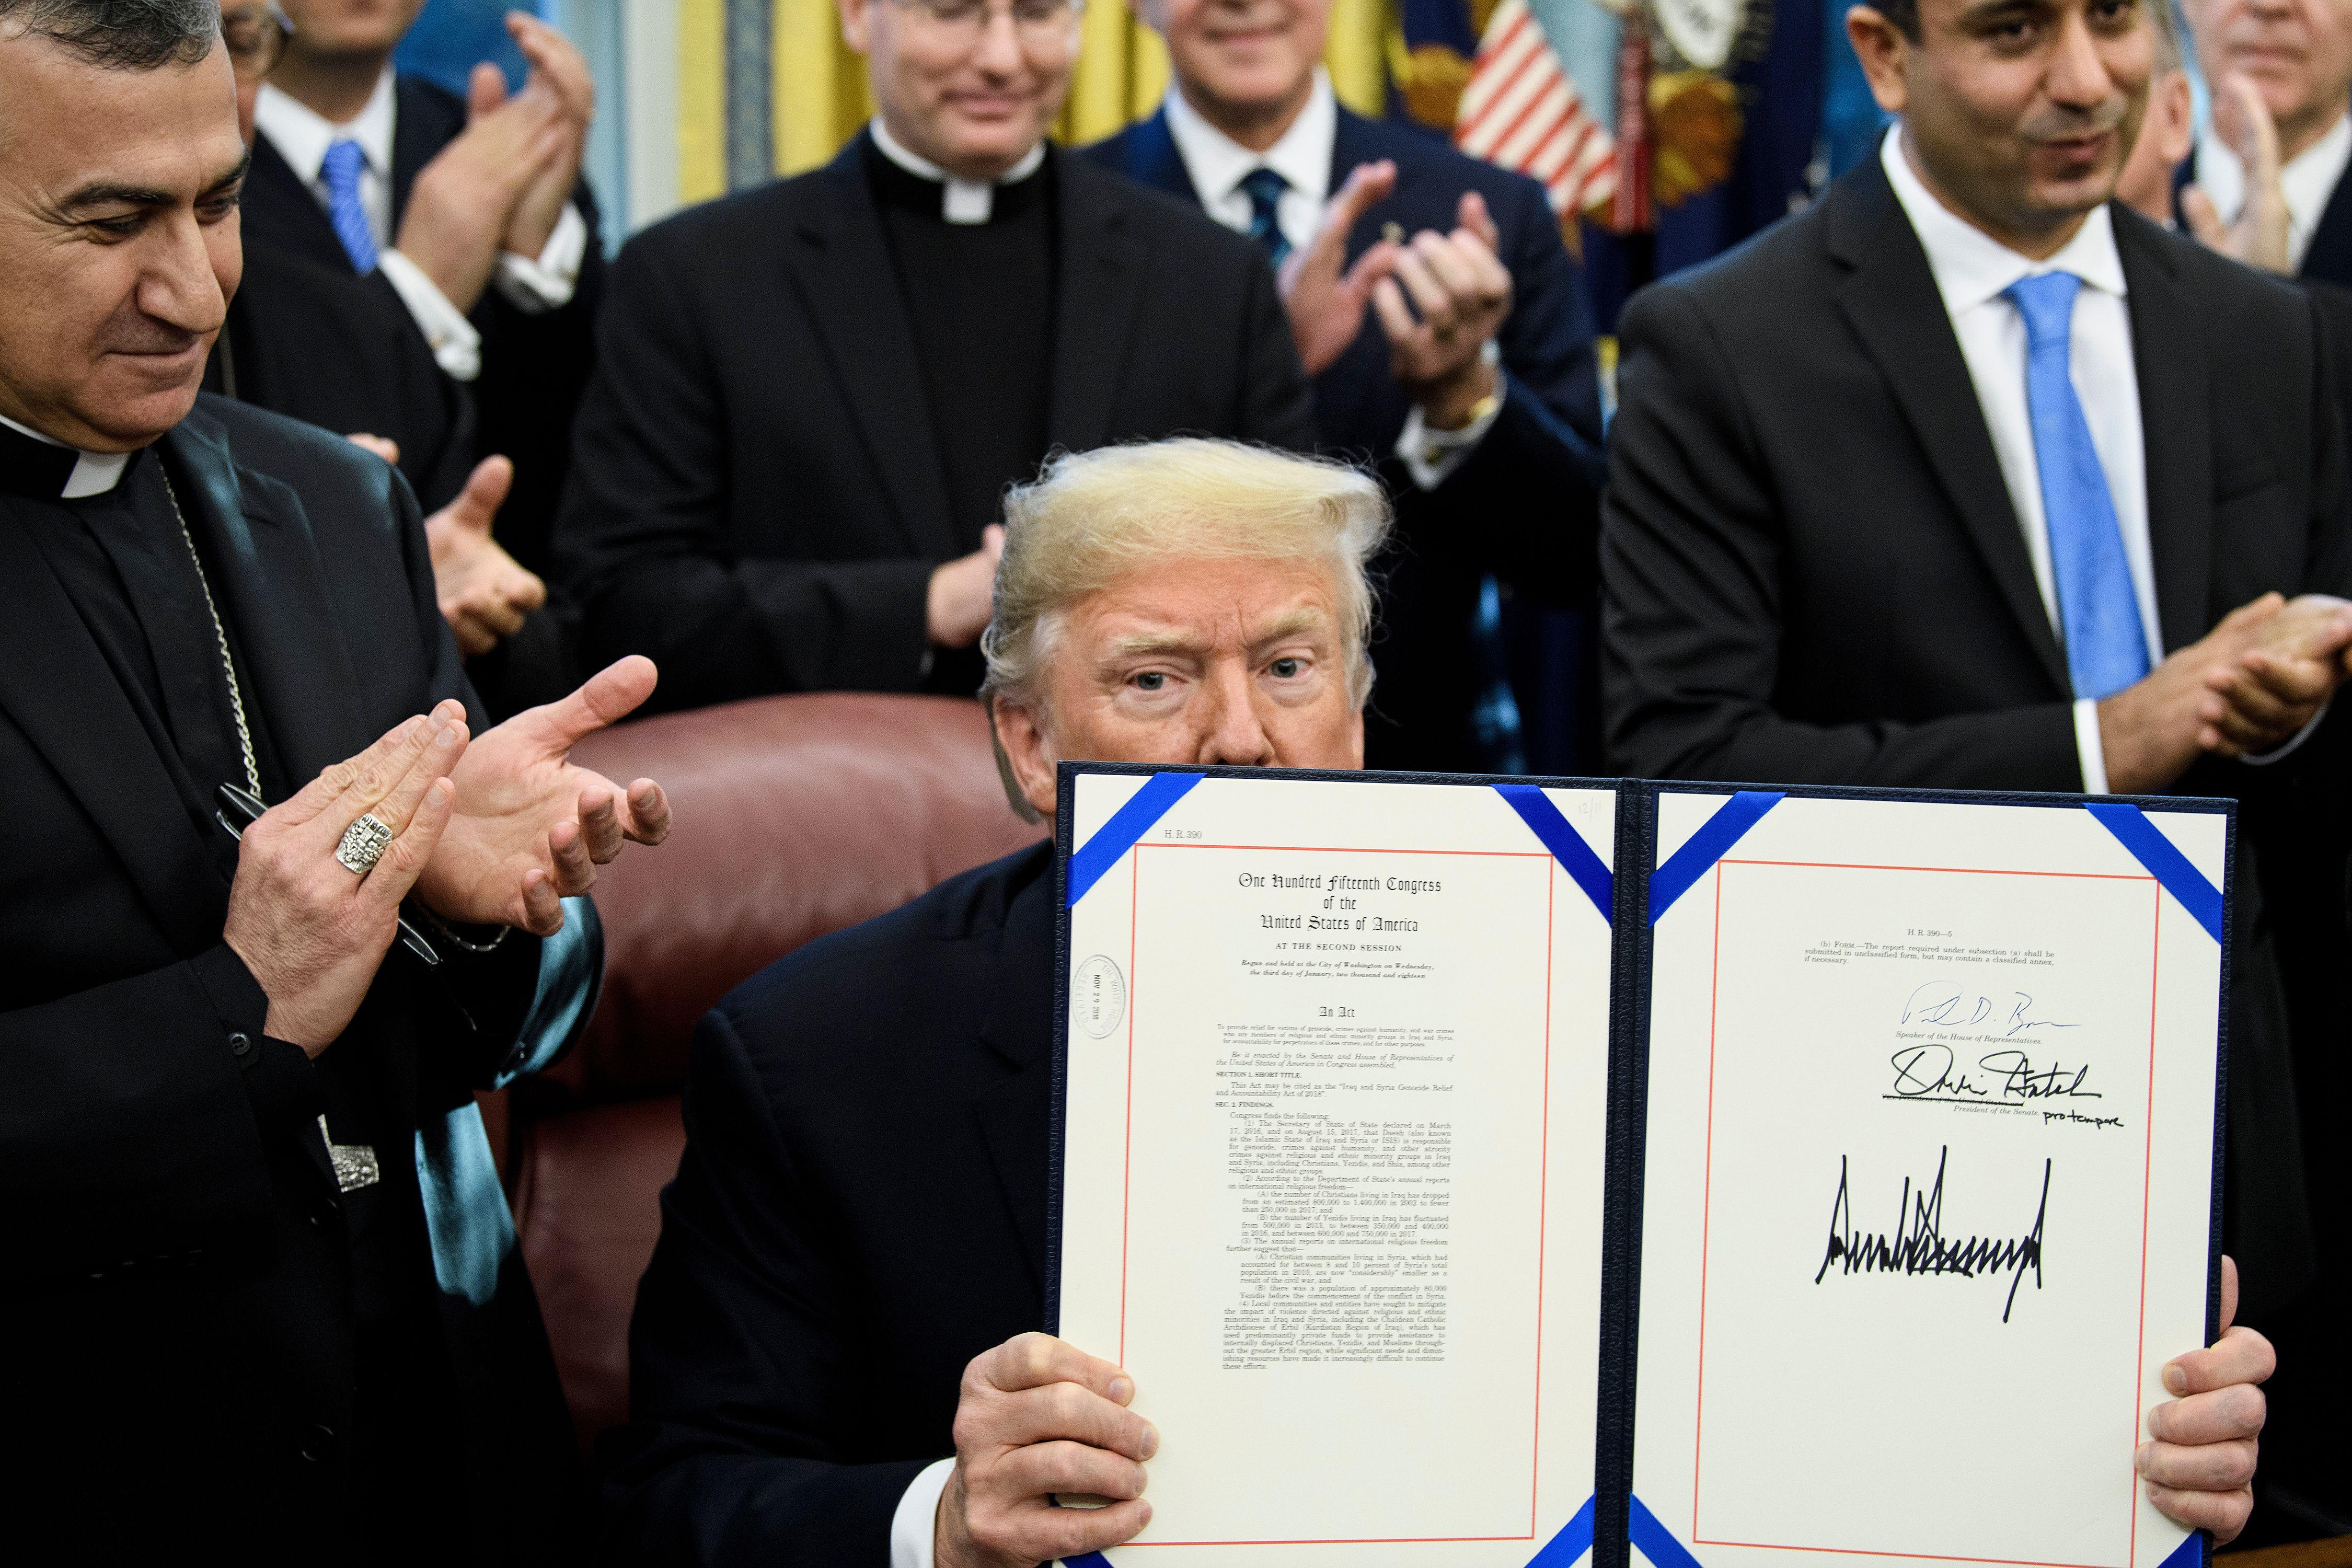 President Donald Trump shows H.R. 390, a bill that activates support for Christians and Yazidis targeted by ISIS, after signing it in the Oval Office on Tuesday.